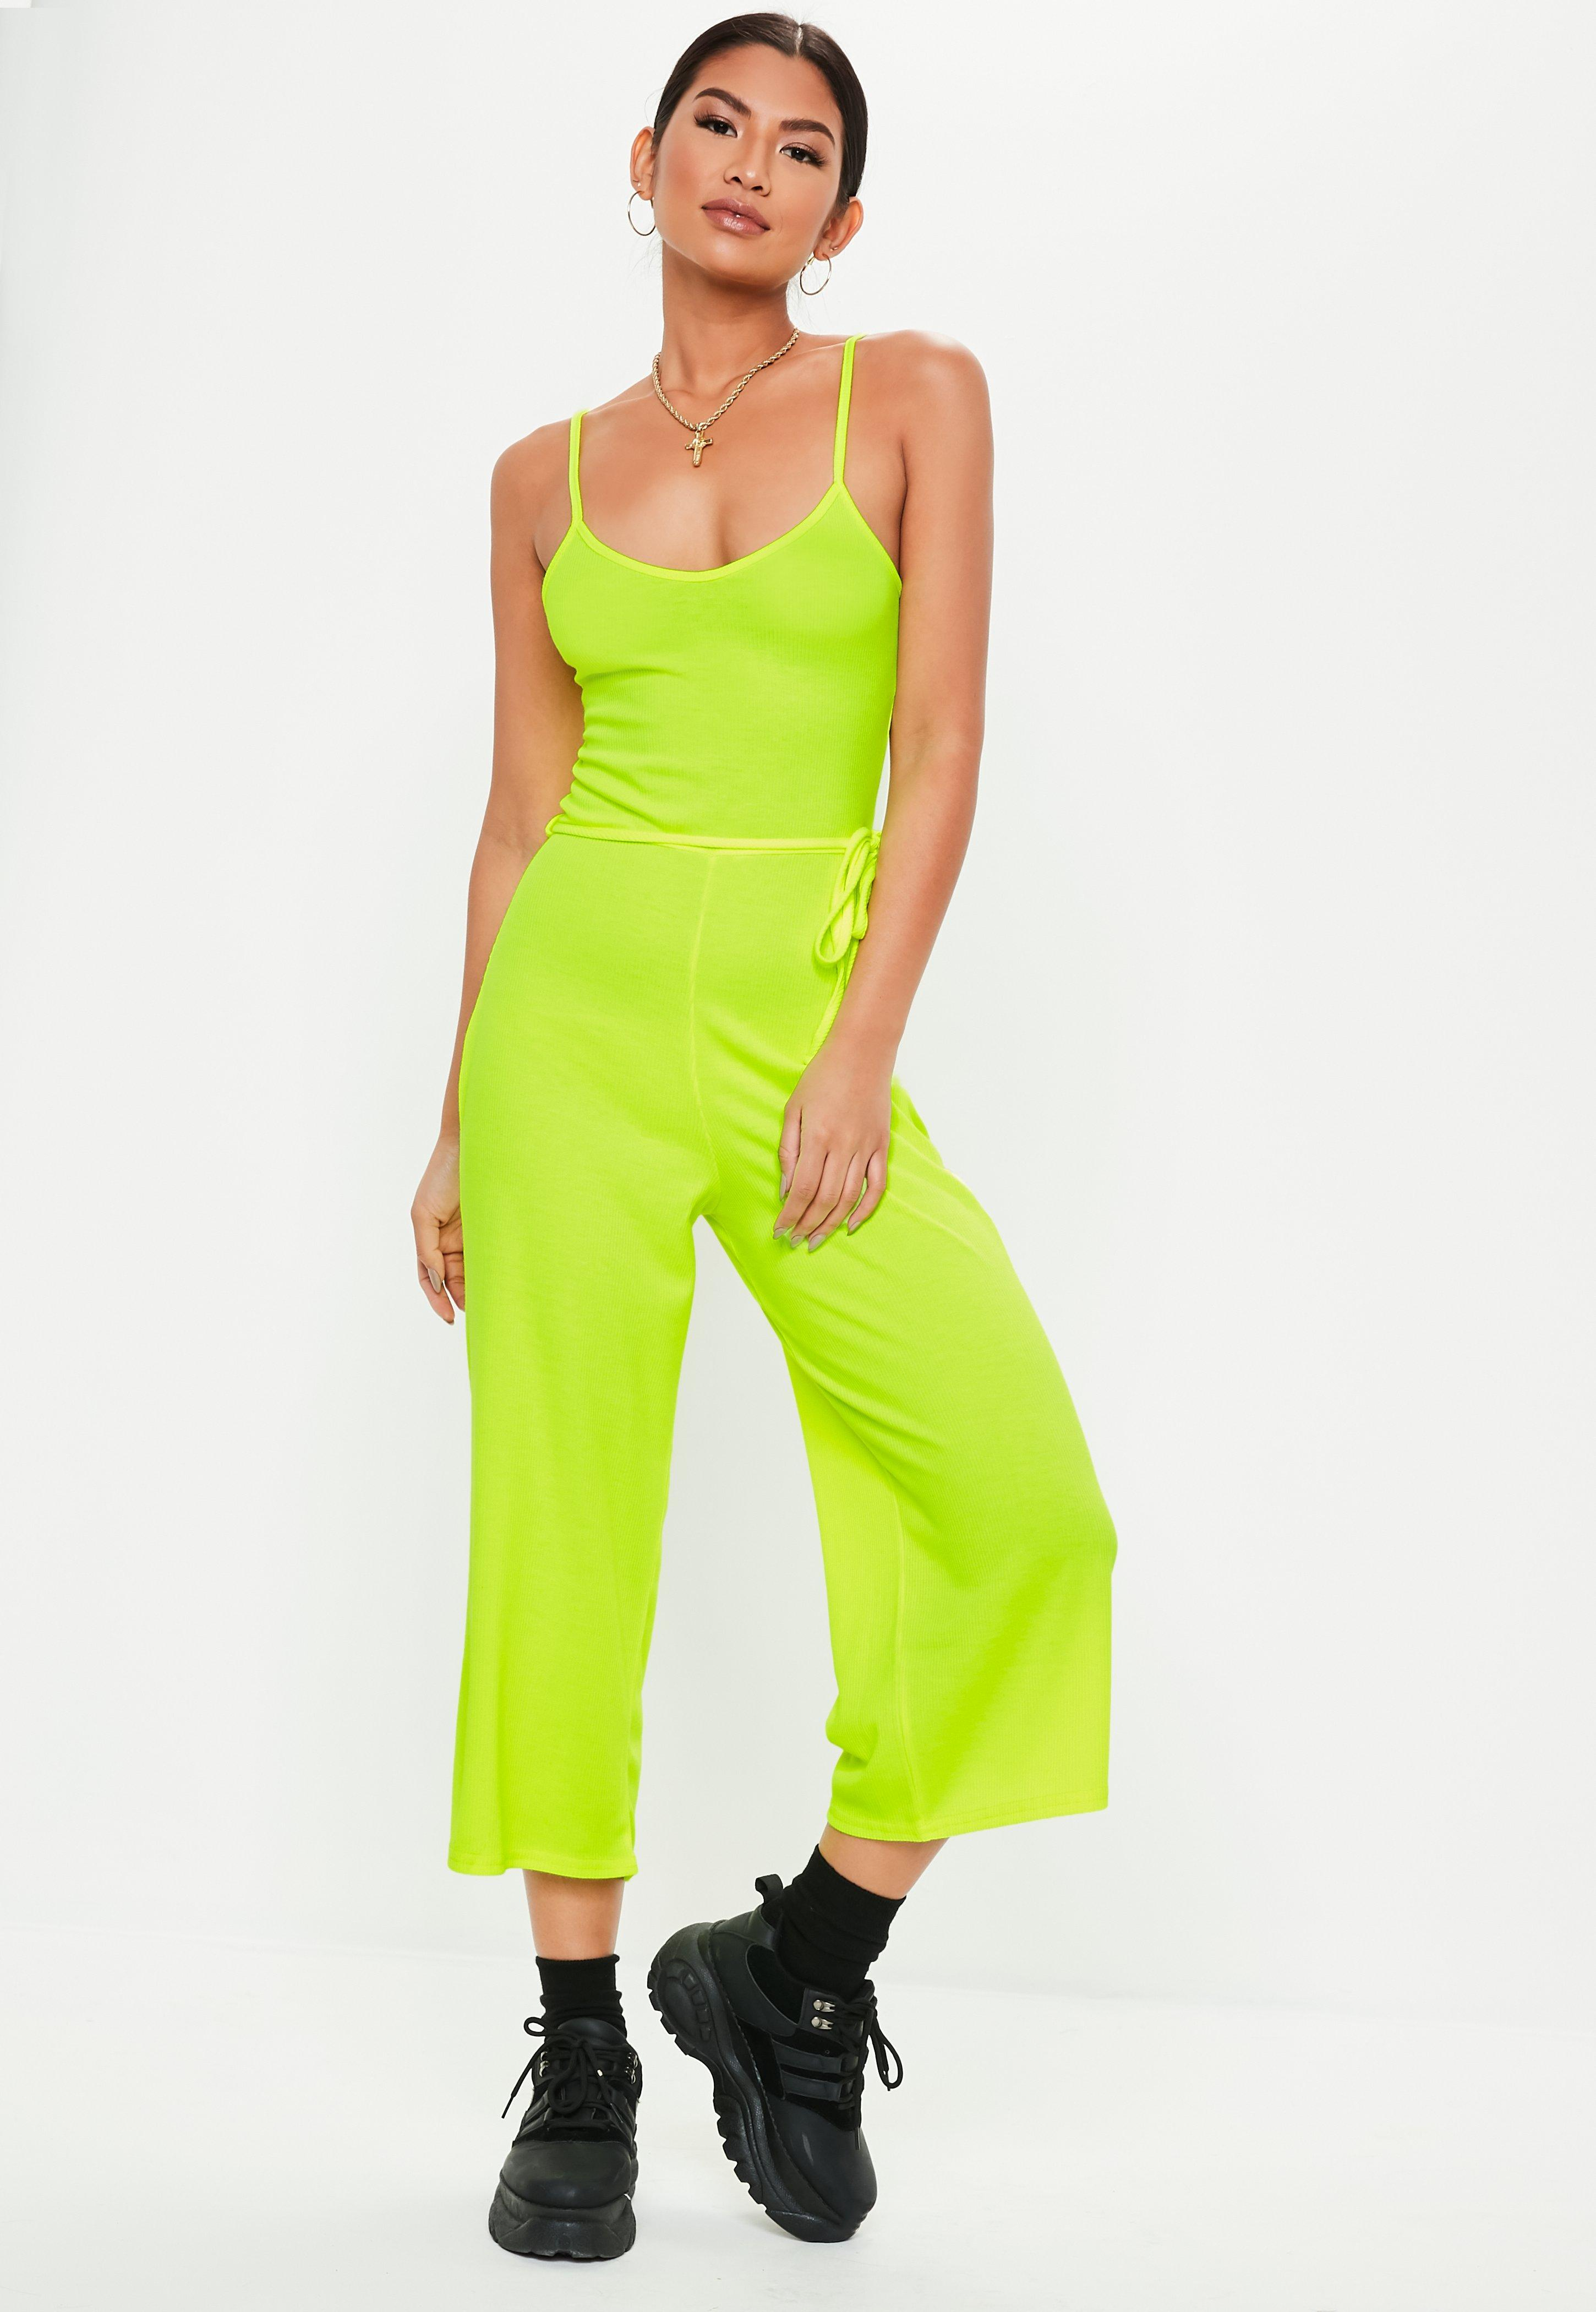 a88fa01956 Lyst - Missguided Neon Yellow Rib Cami Culotte Jumpsuit in Yellow